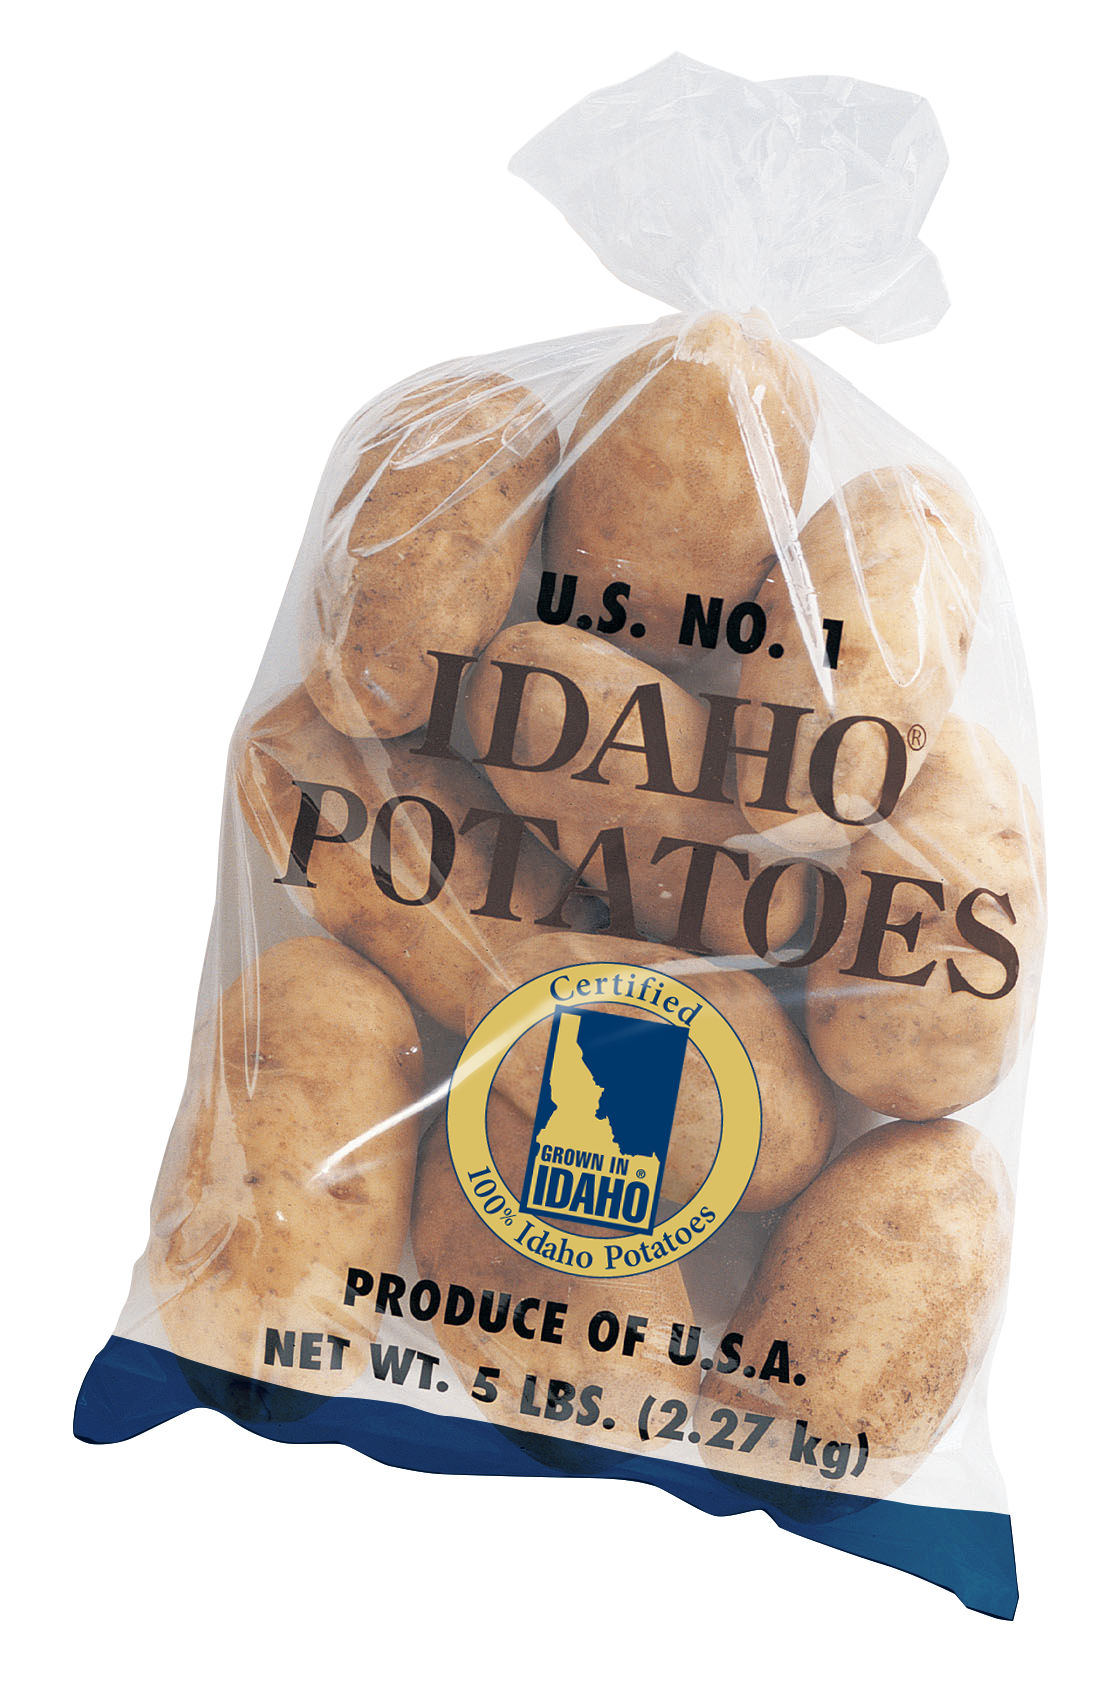 Potato clipart russet. Idaho commission download png